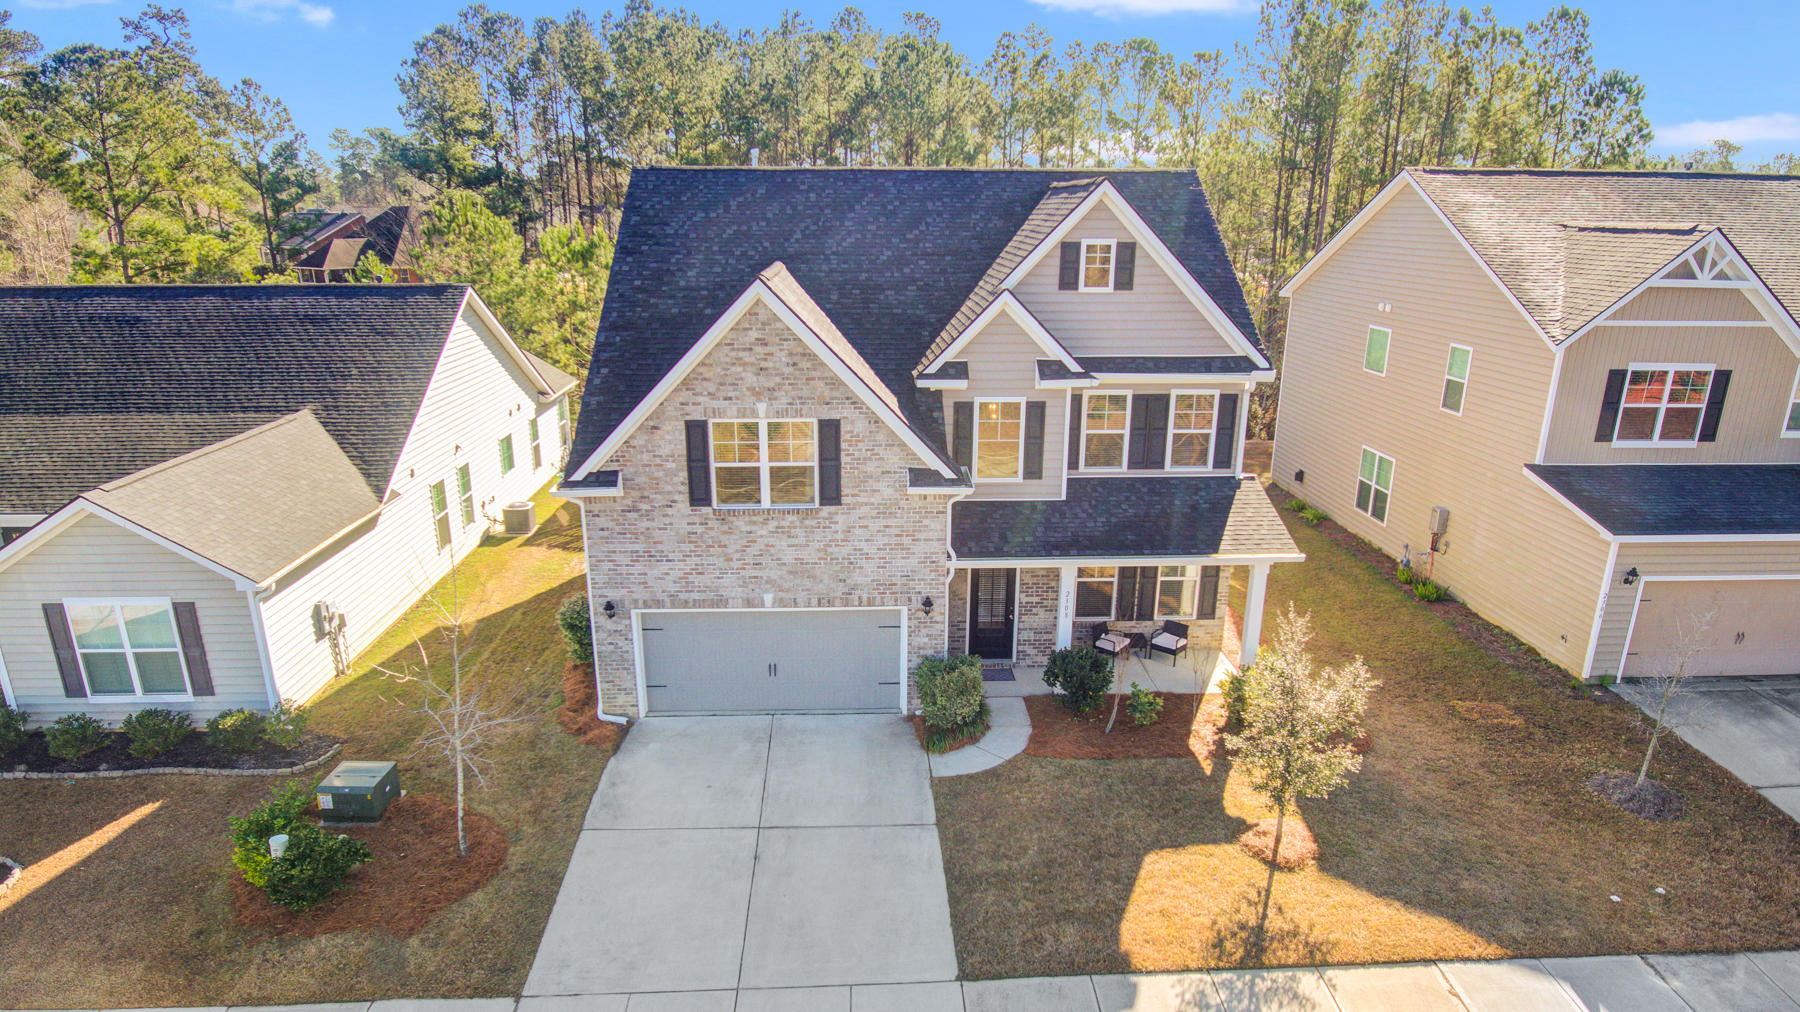 2308 Hummingbird Lane Summerville, SC 29483